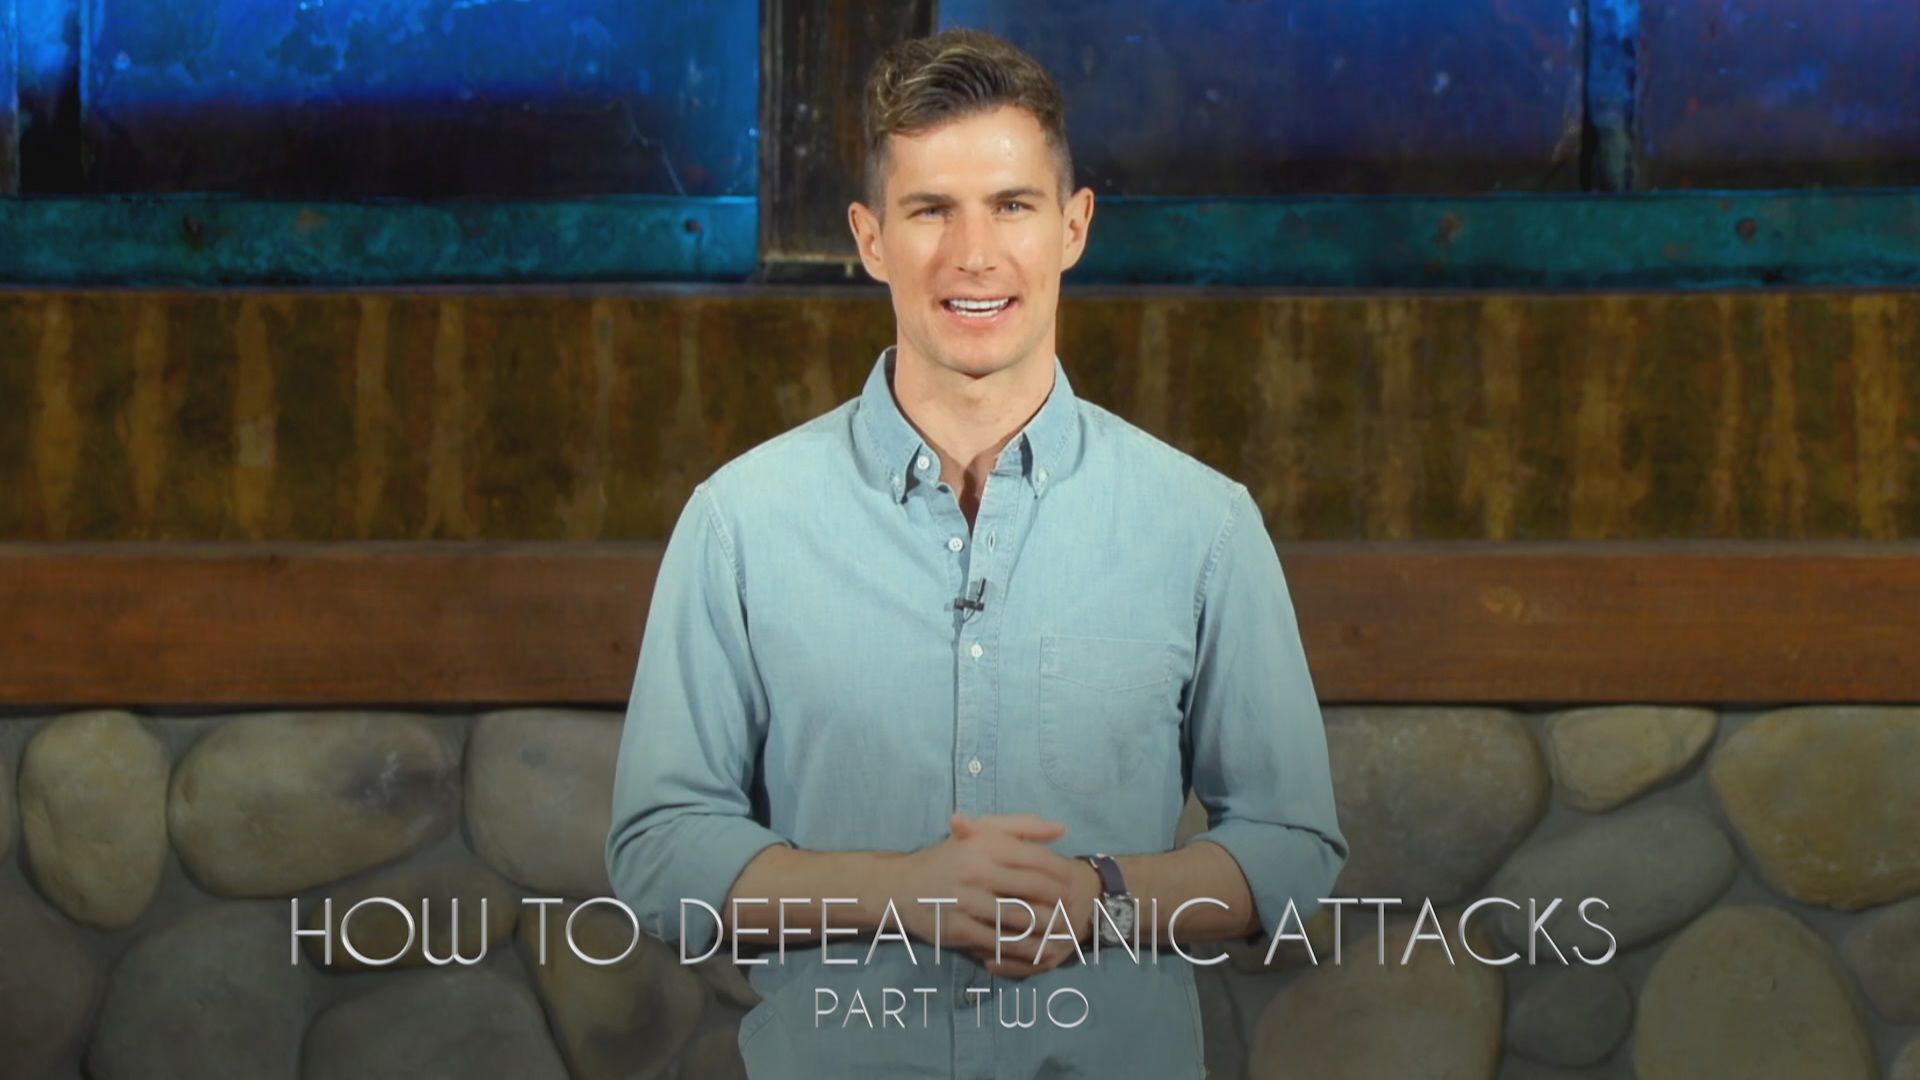 How To Defeat Panic Attacks Part 2